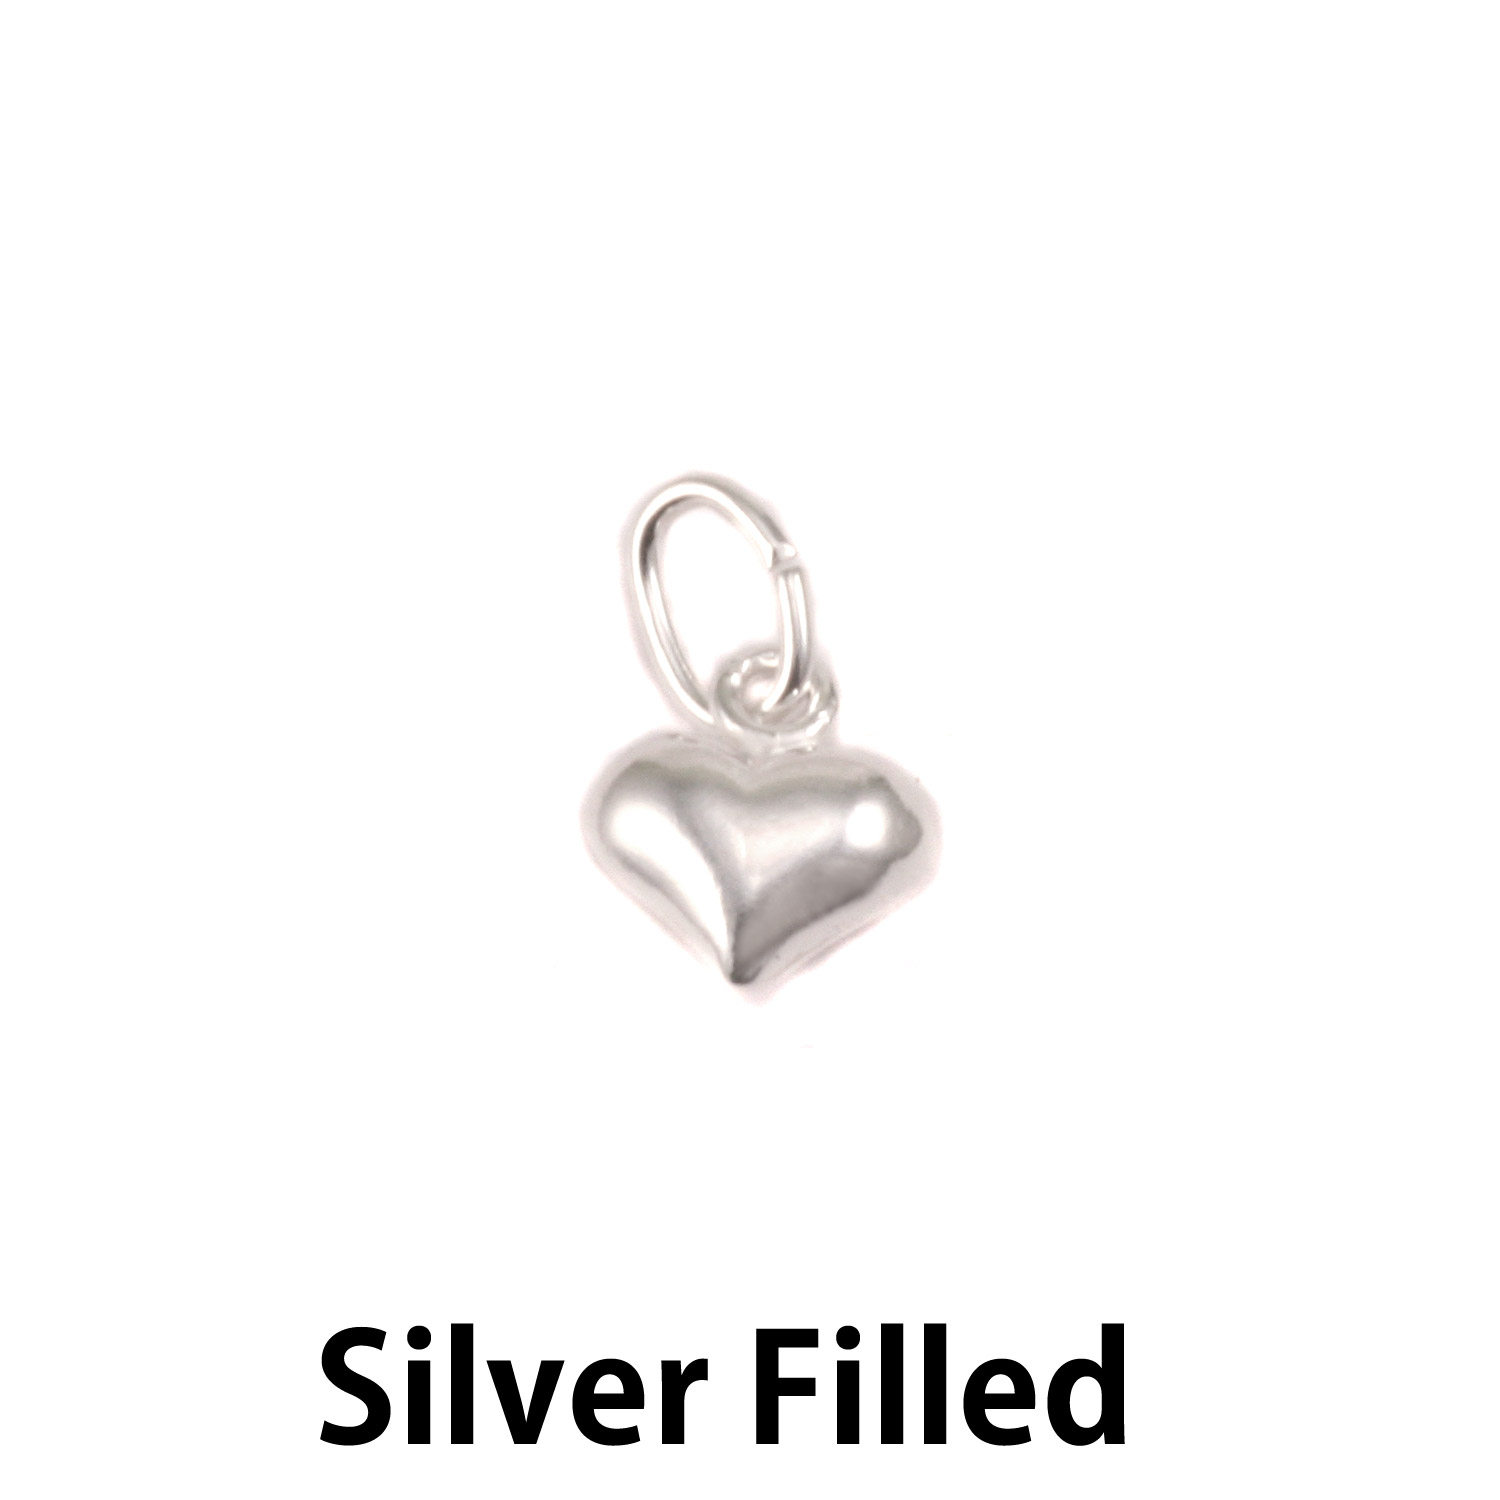 Silver Filled Small Puffy Heart Charm